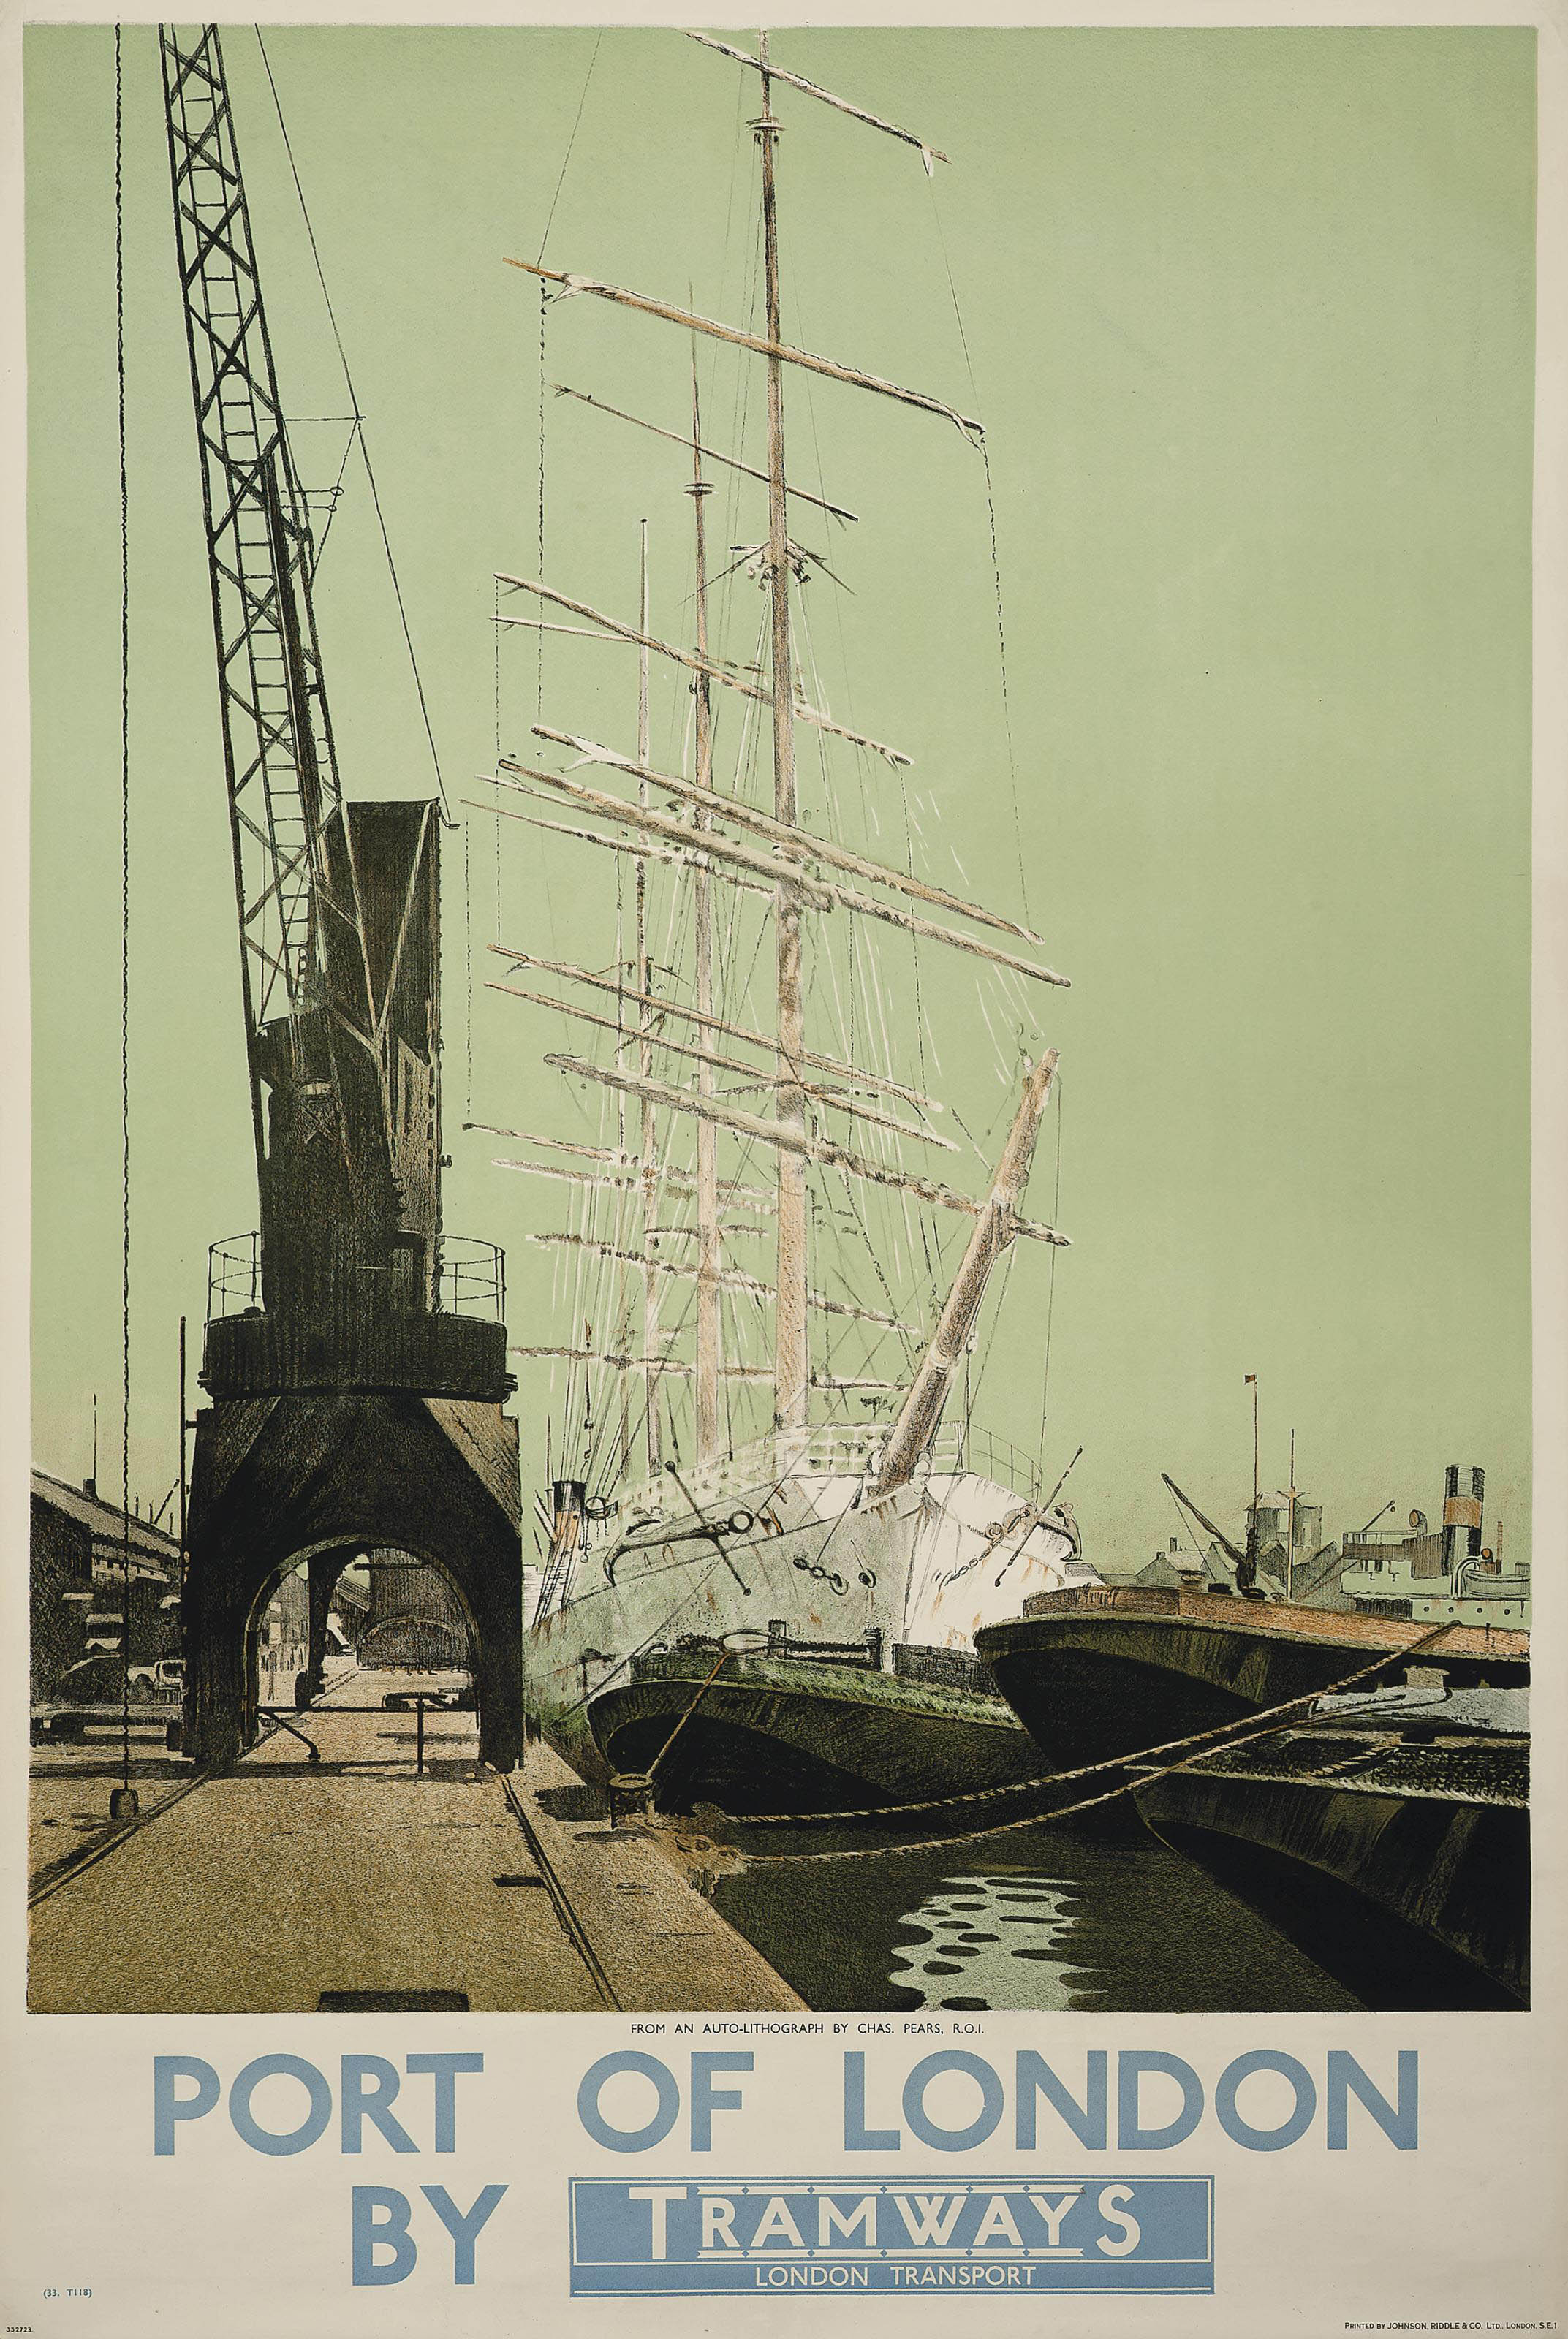 PORT OF LONDON BY TRAMWAYS